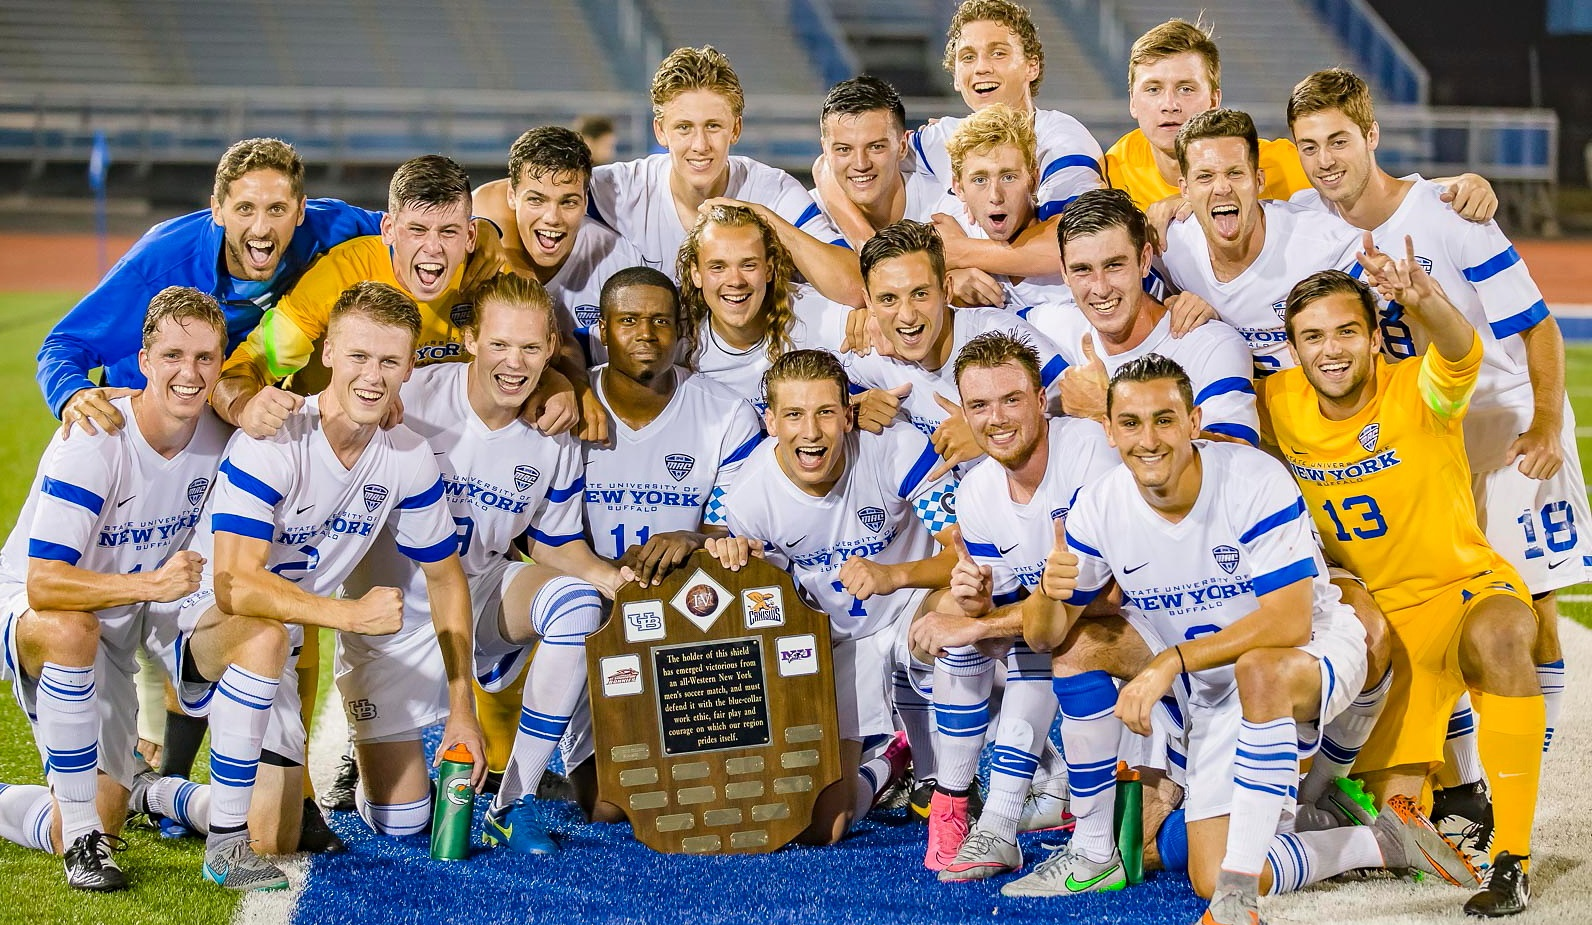 The UB Bulls, pictured after winning the Big 4 Shield in 2015, will no longer have a men's soccer program. (Don Nieman/Special to The News)